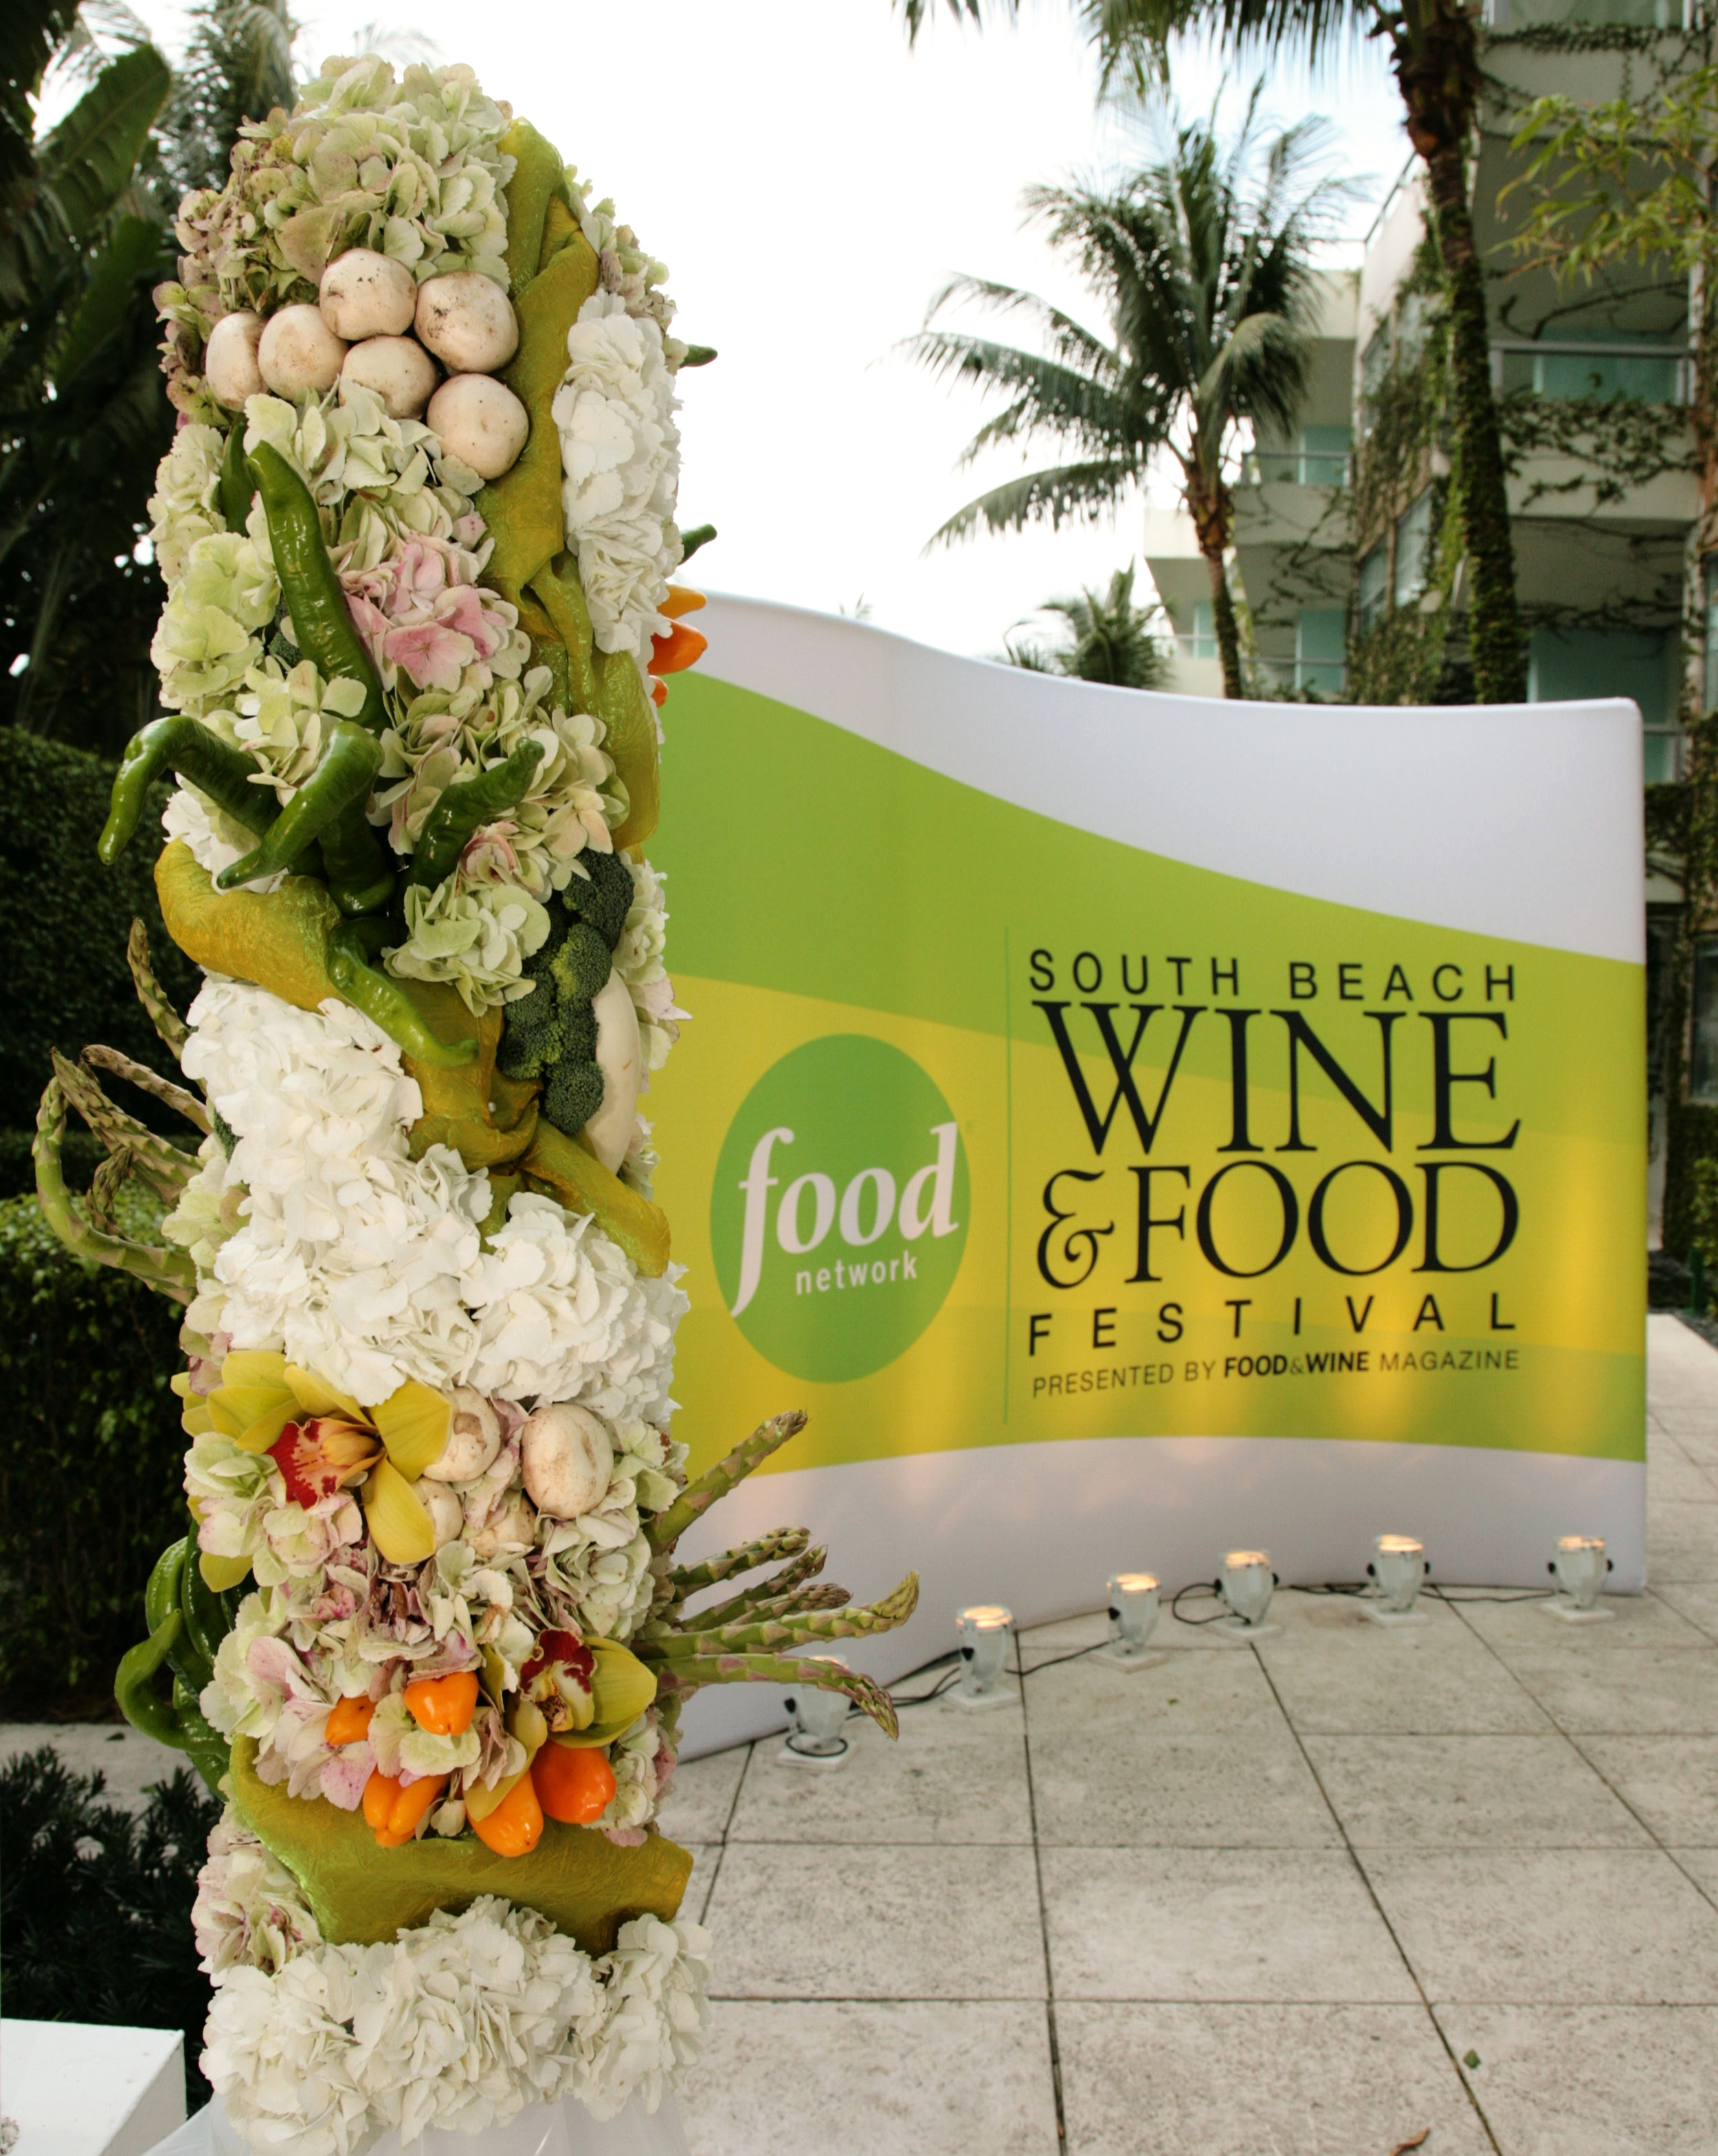 Flower column for food network step and repeat.jpg